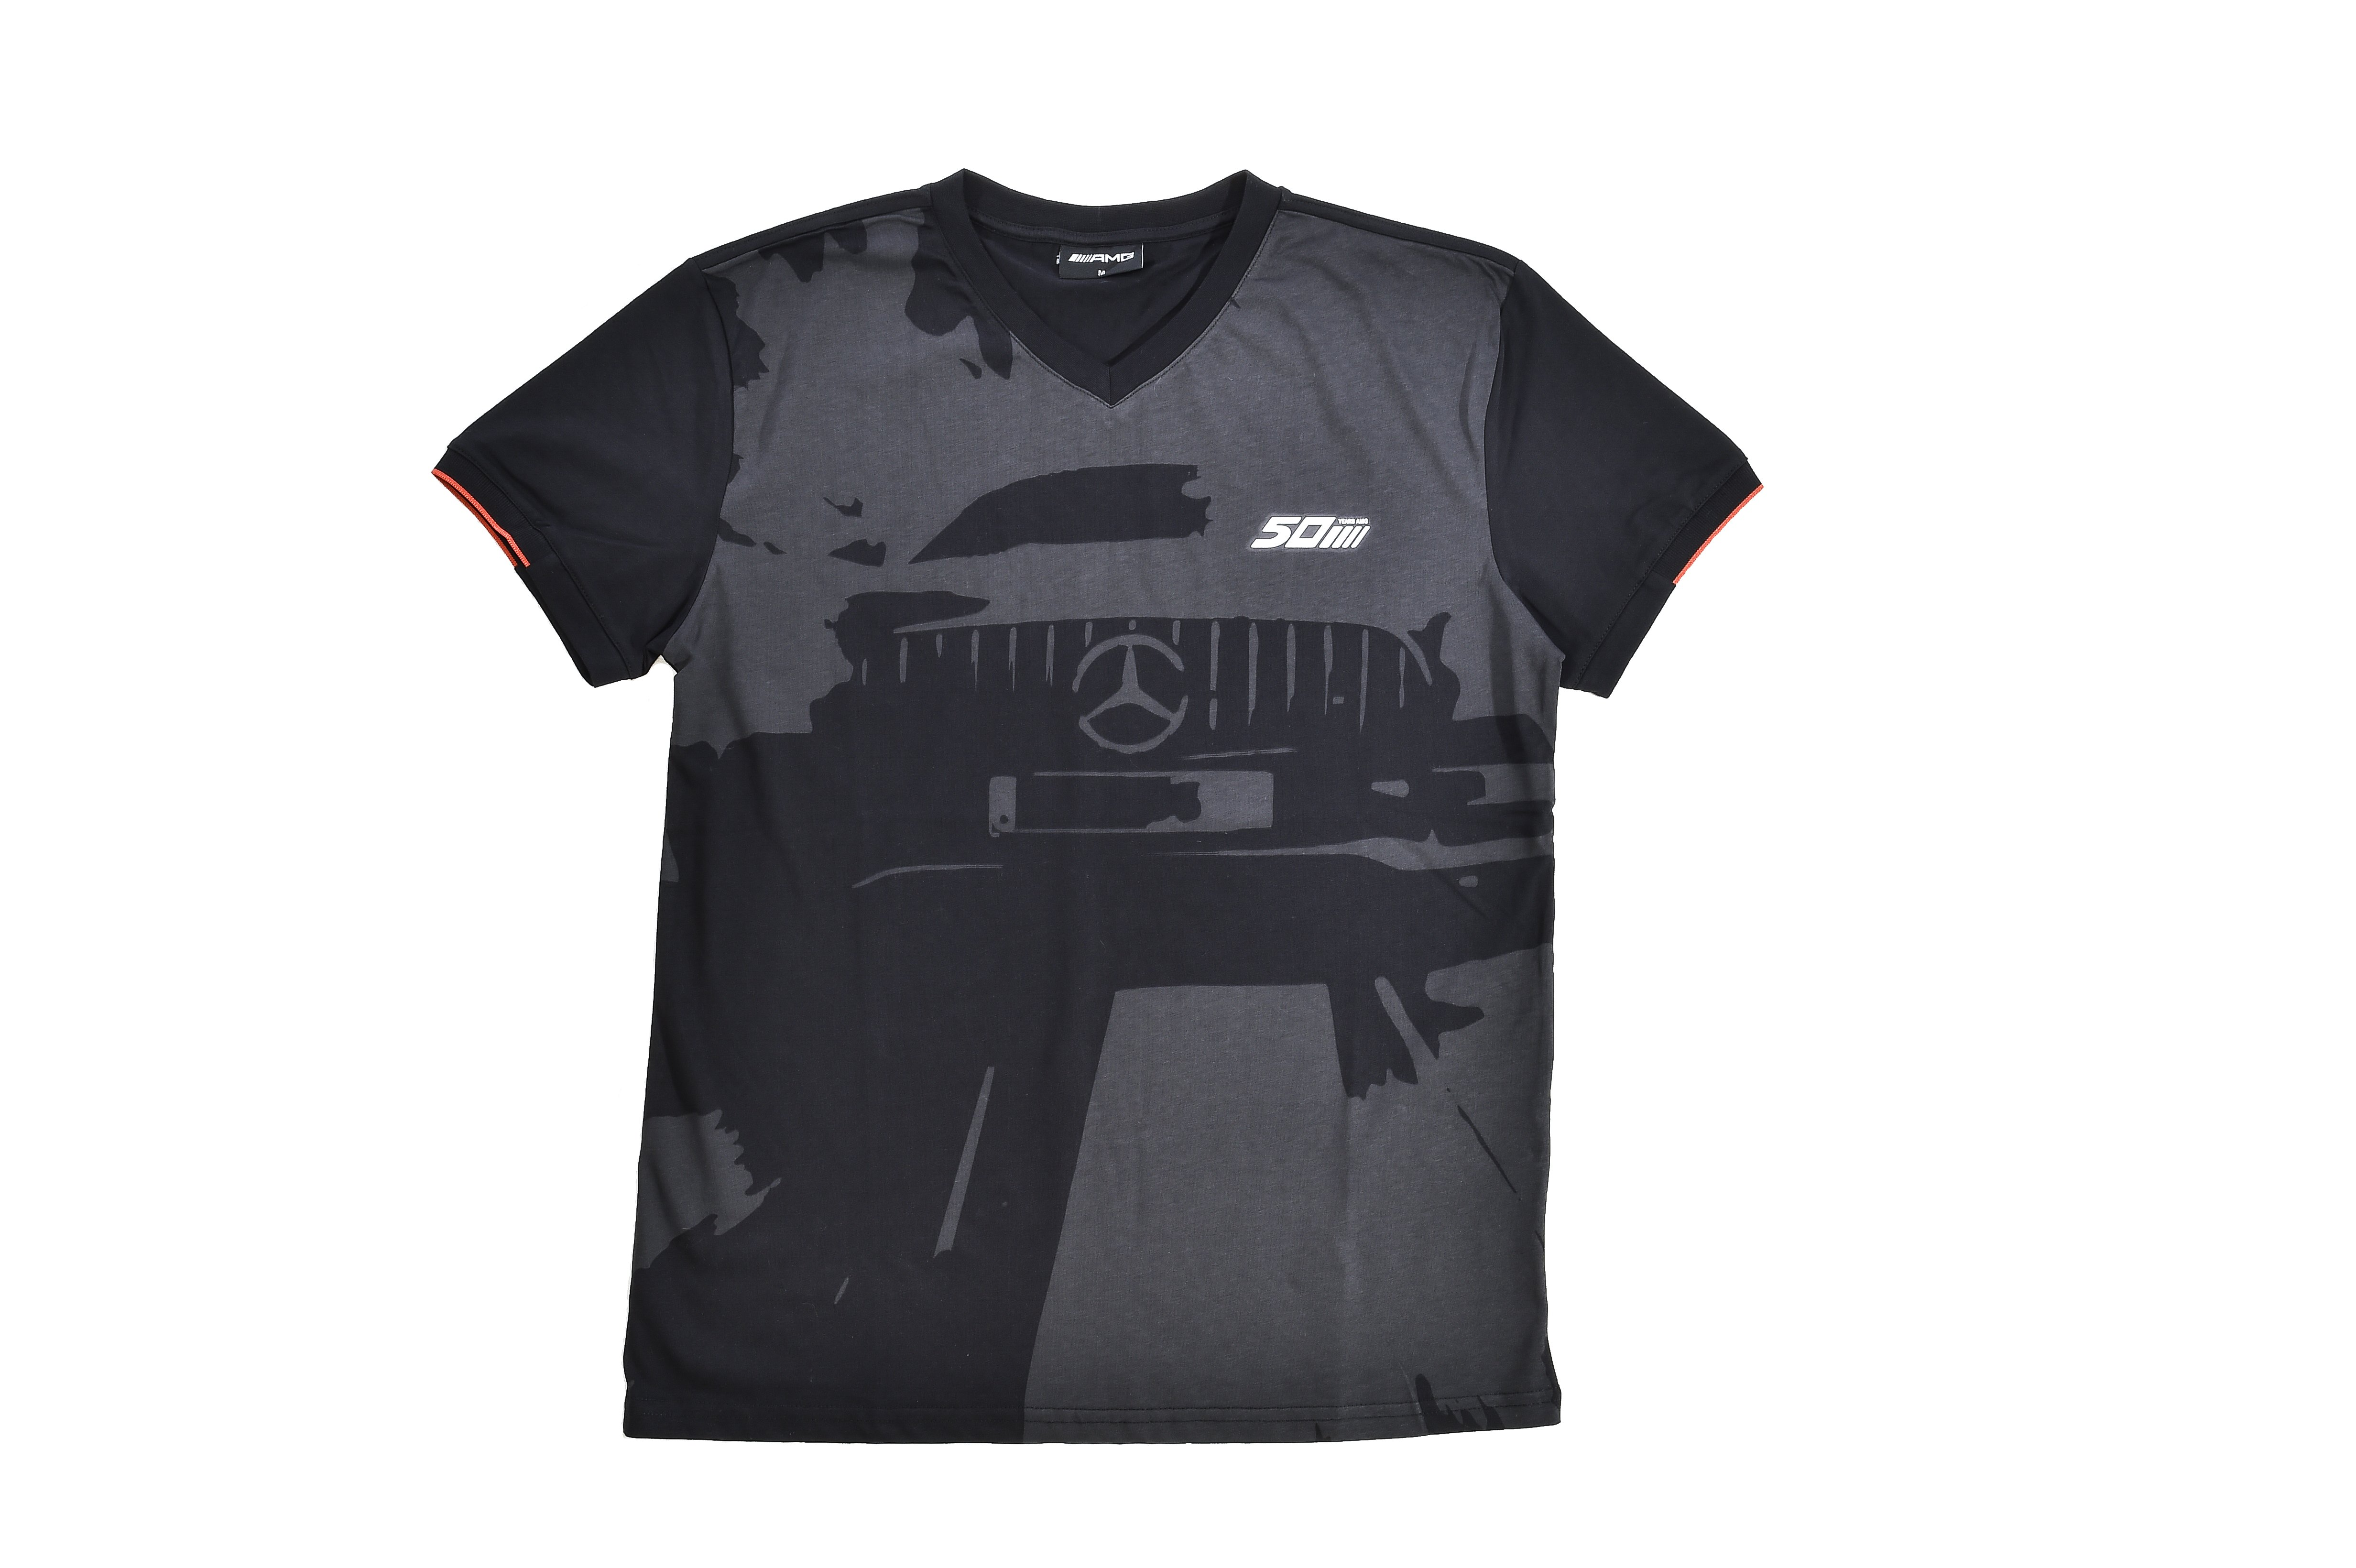 AMG Print T-Shirt 50Y Herren | AMG Private Lounge